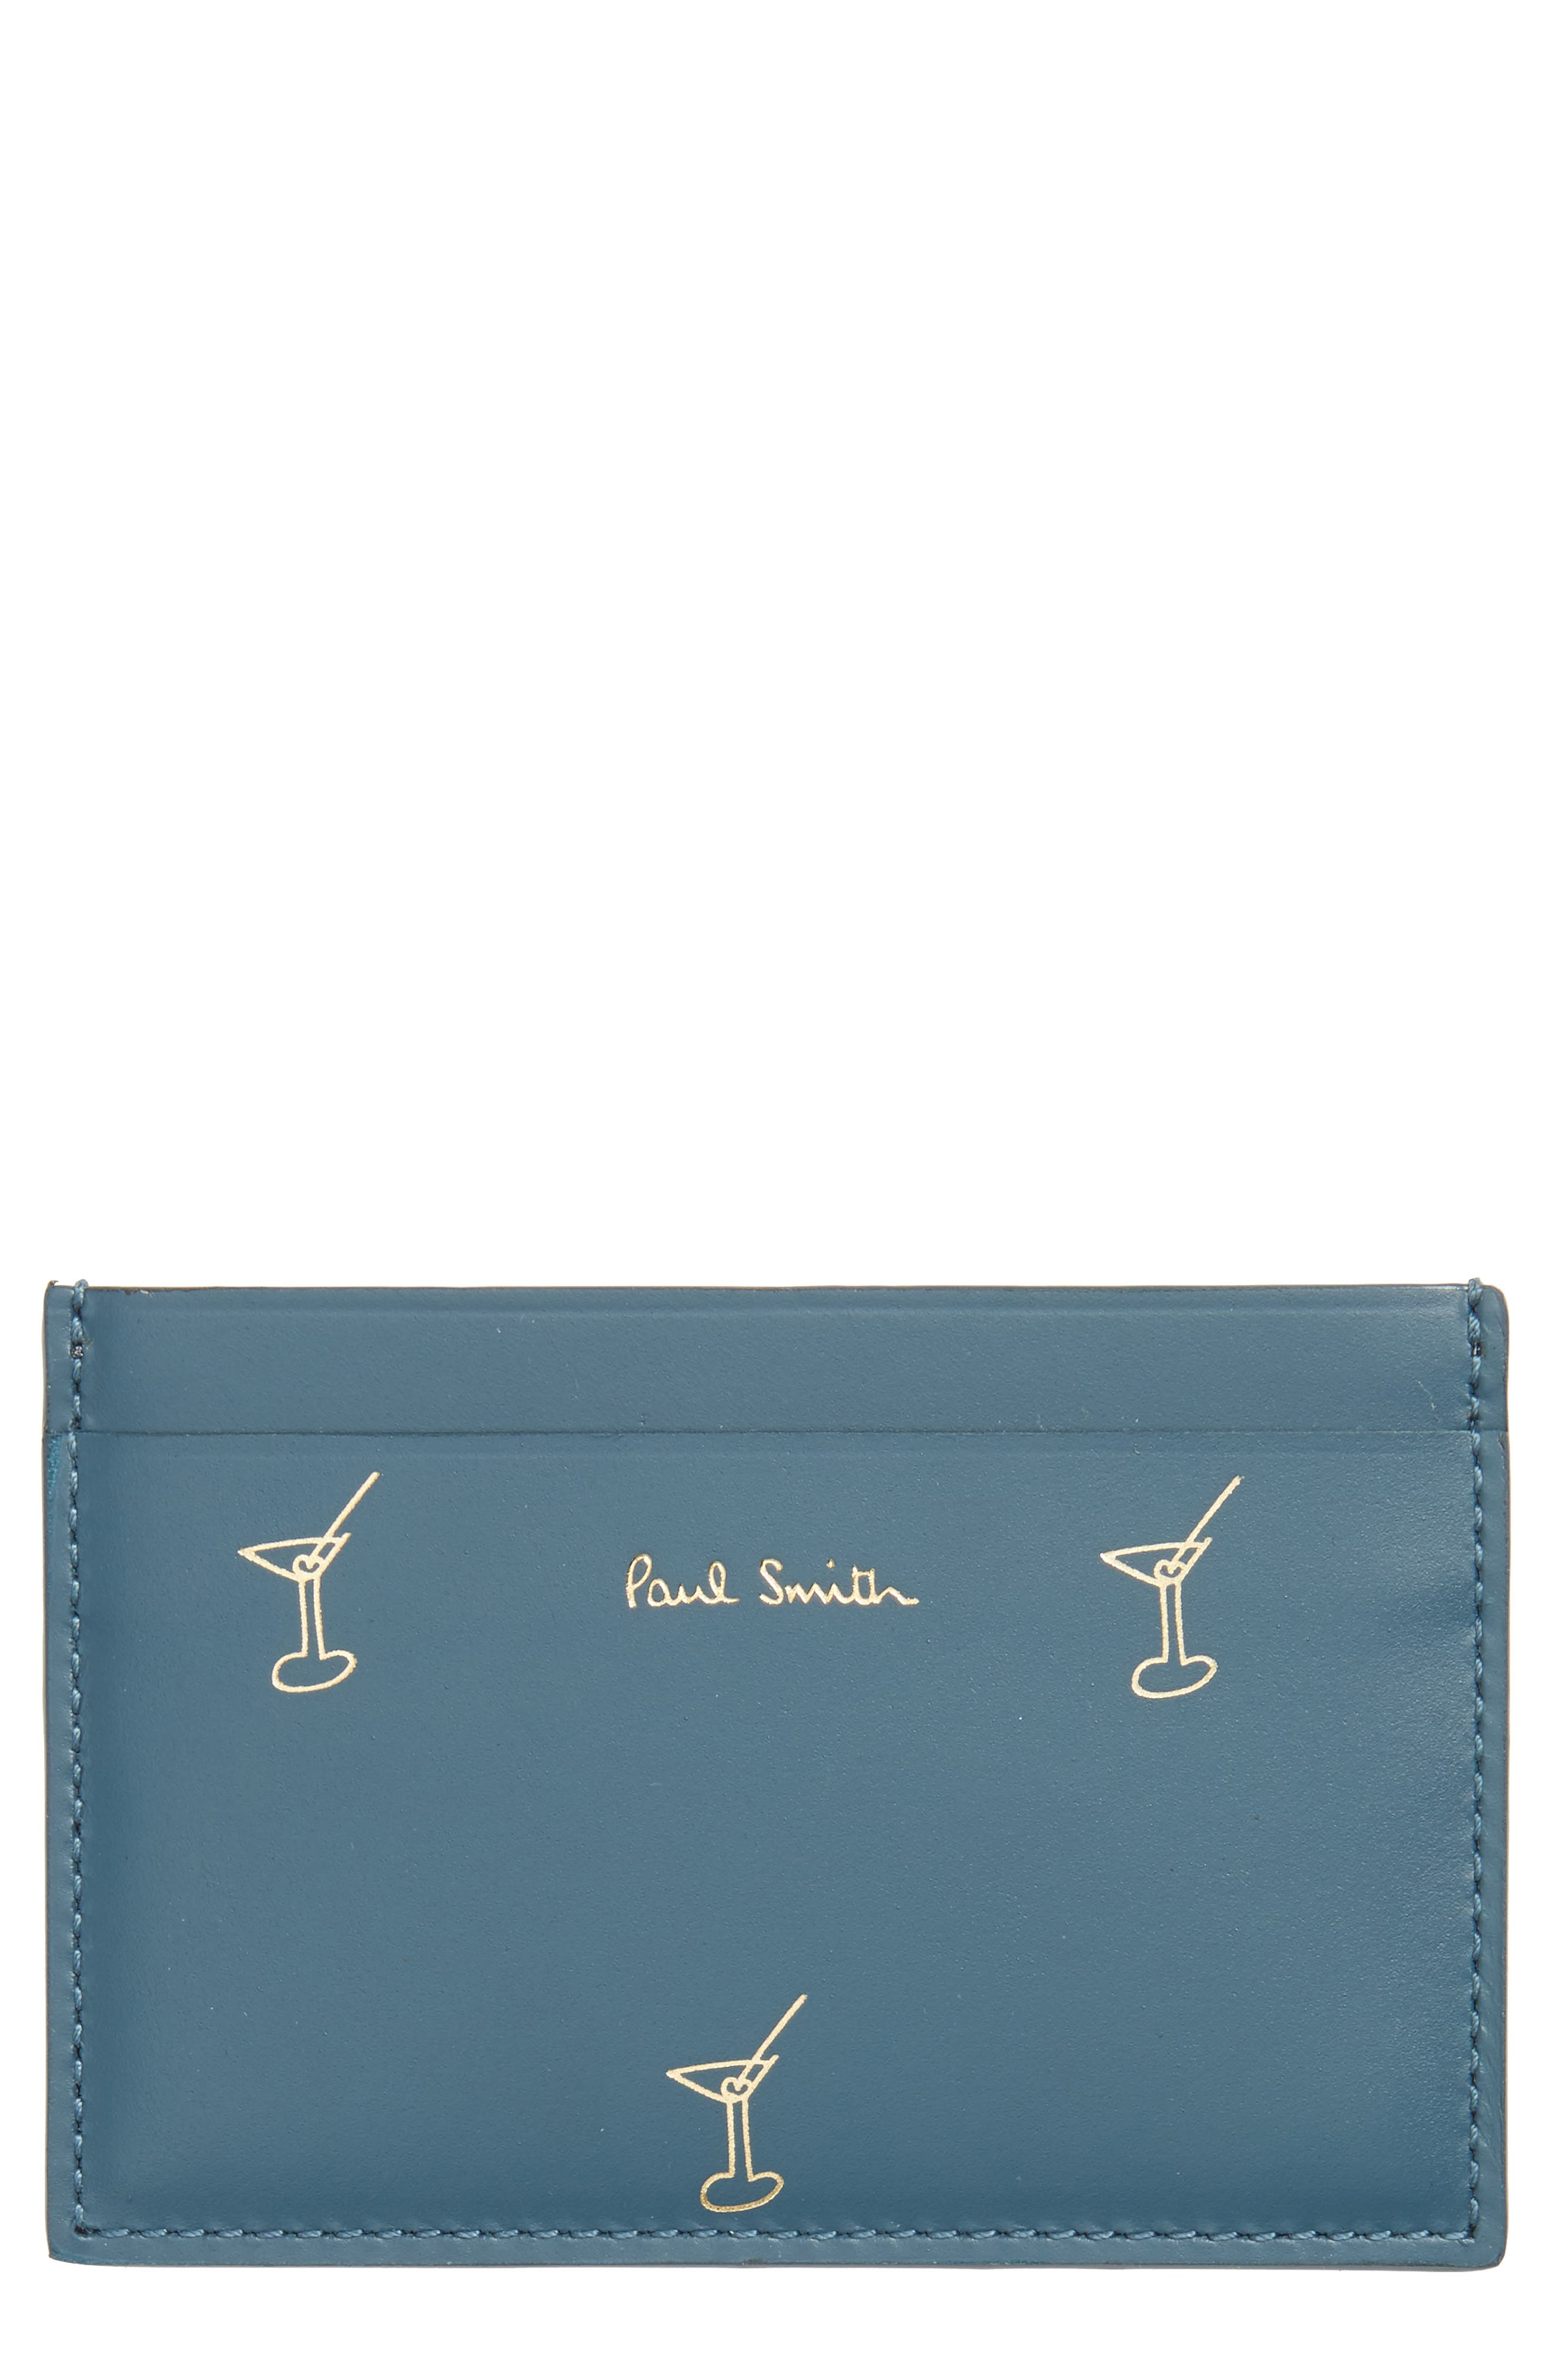 Paul Smith Doodles Leather Card Case